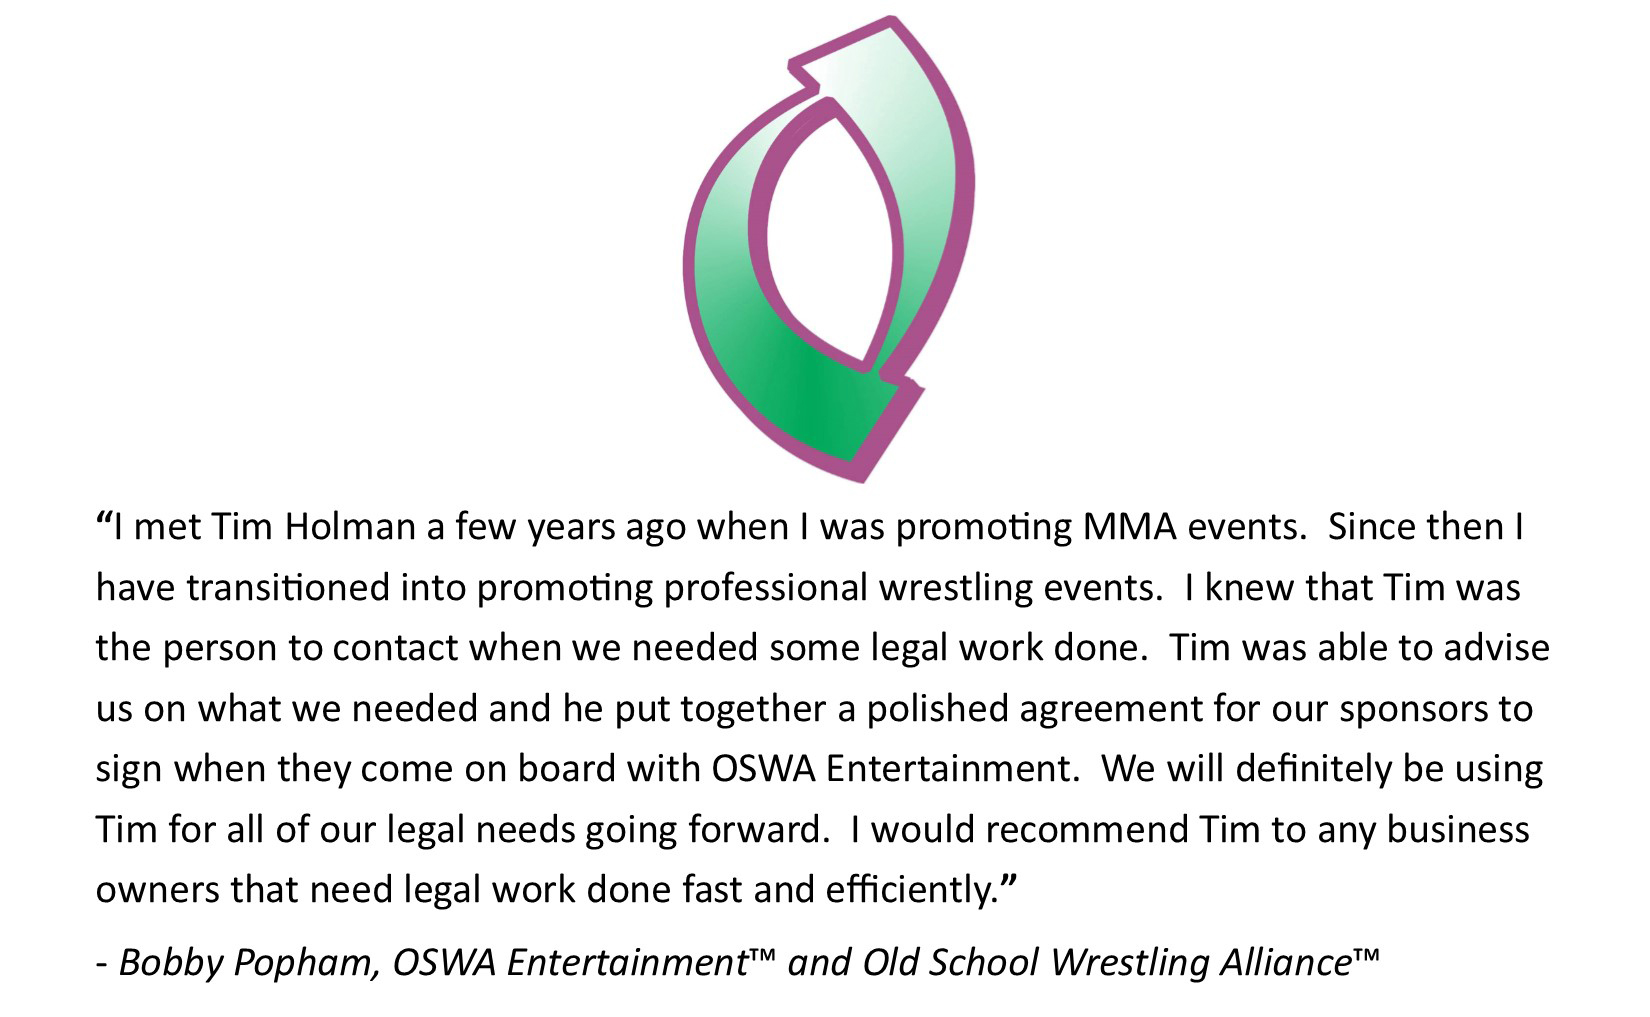 OSWA Entertainment